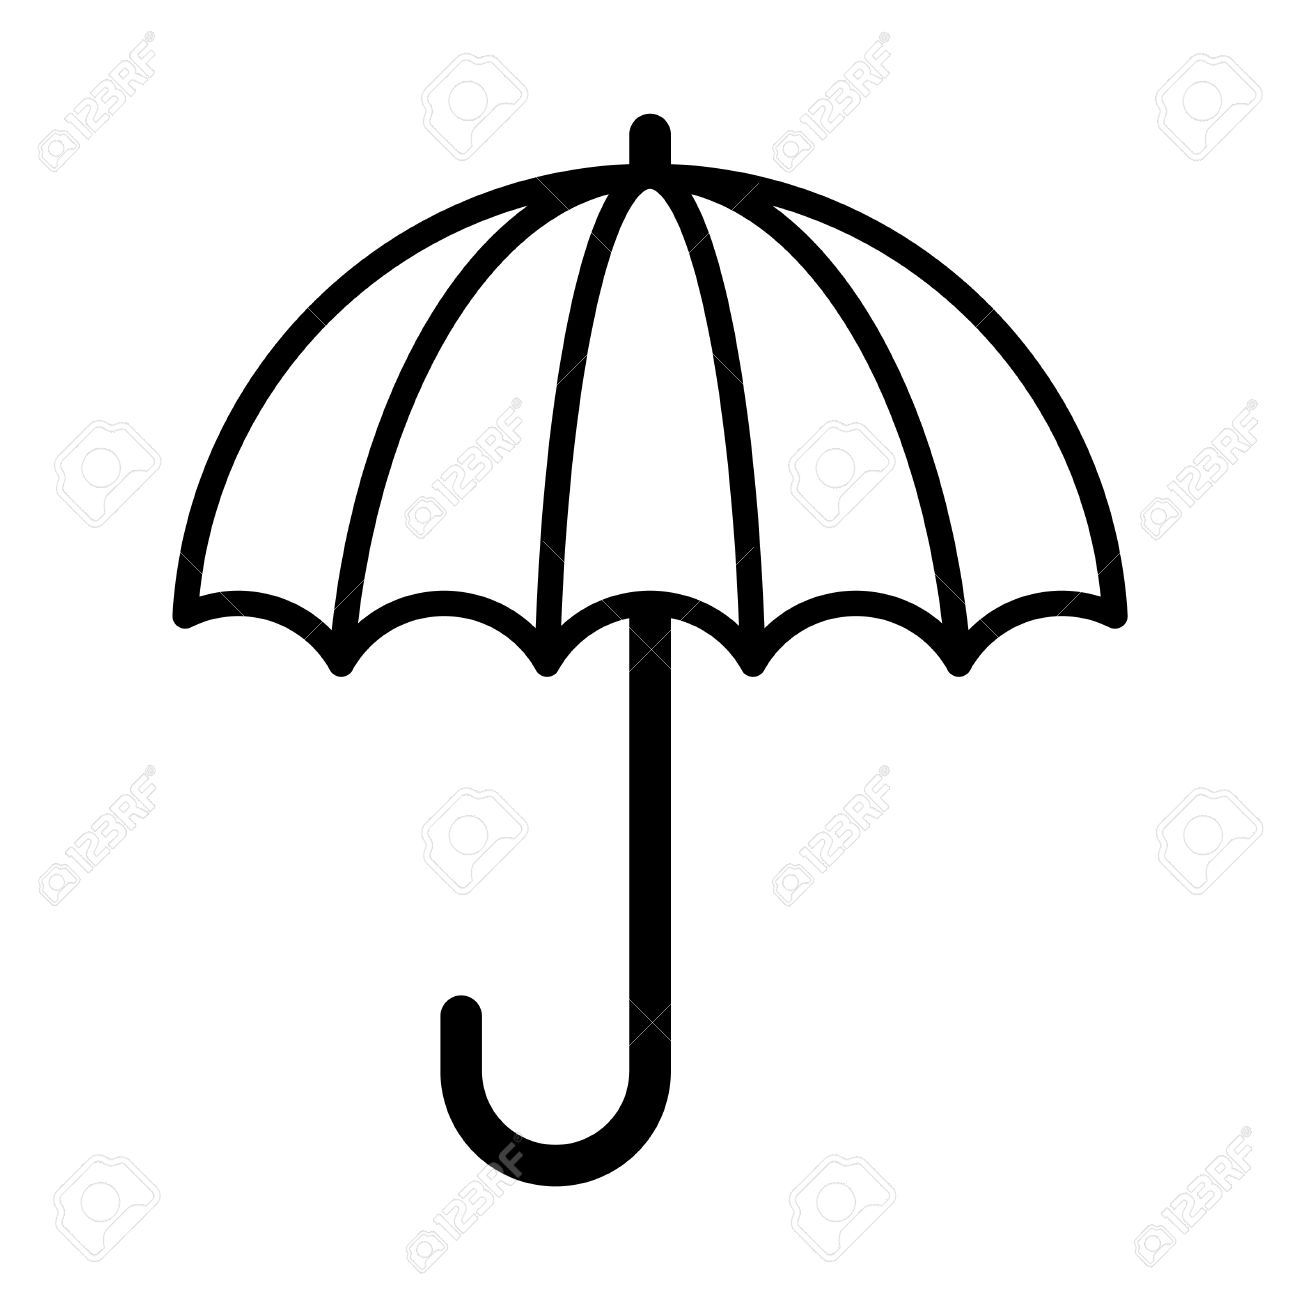 umbrella vector icon royalty free cliparts vectors and stock rh 123rf com umbrella vector png umbrella vector png